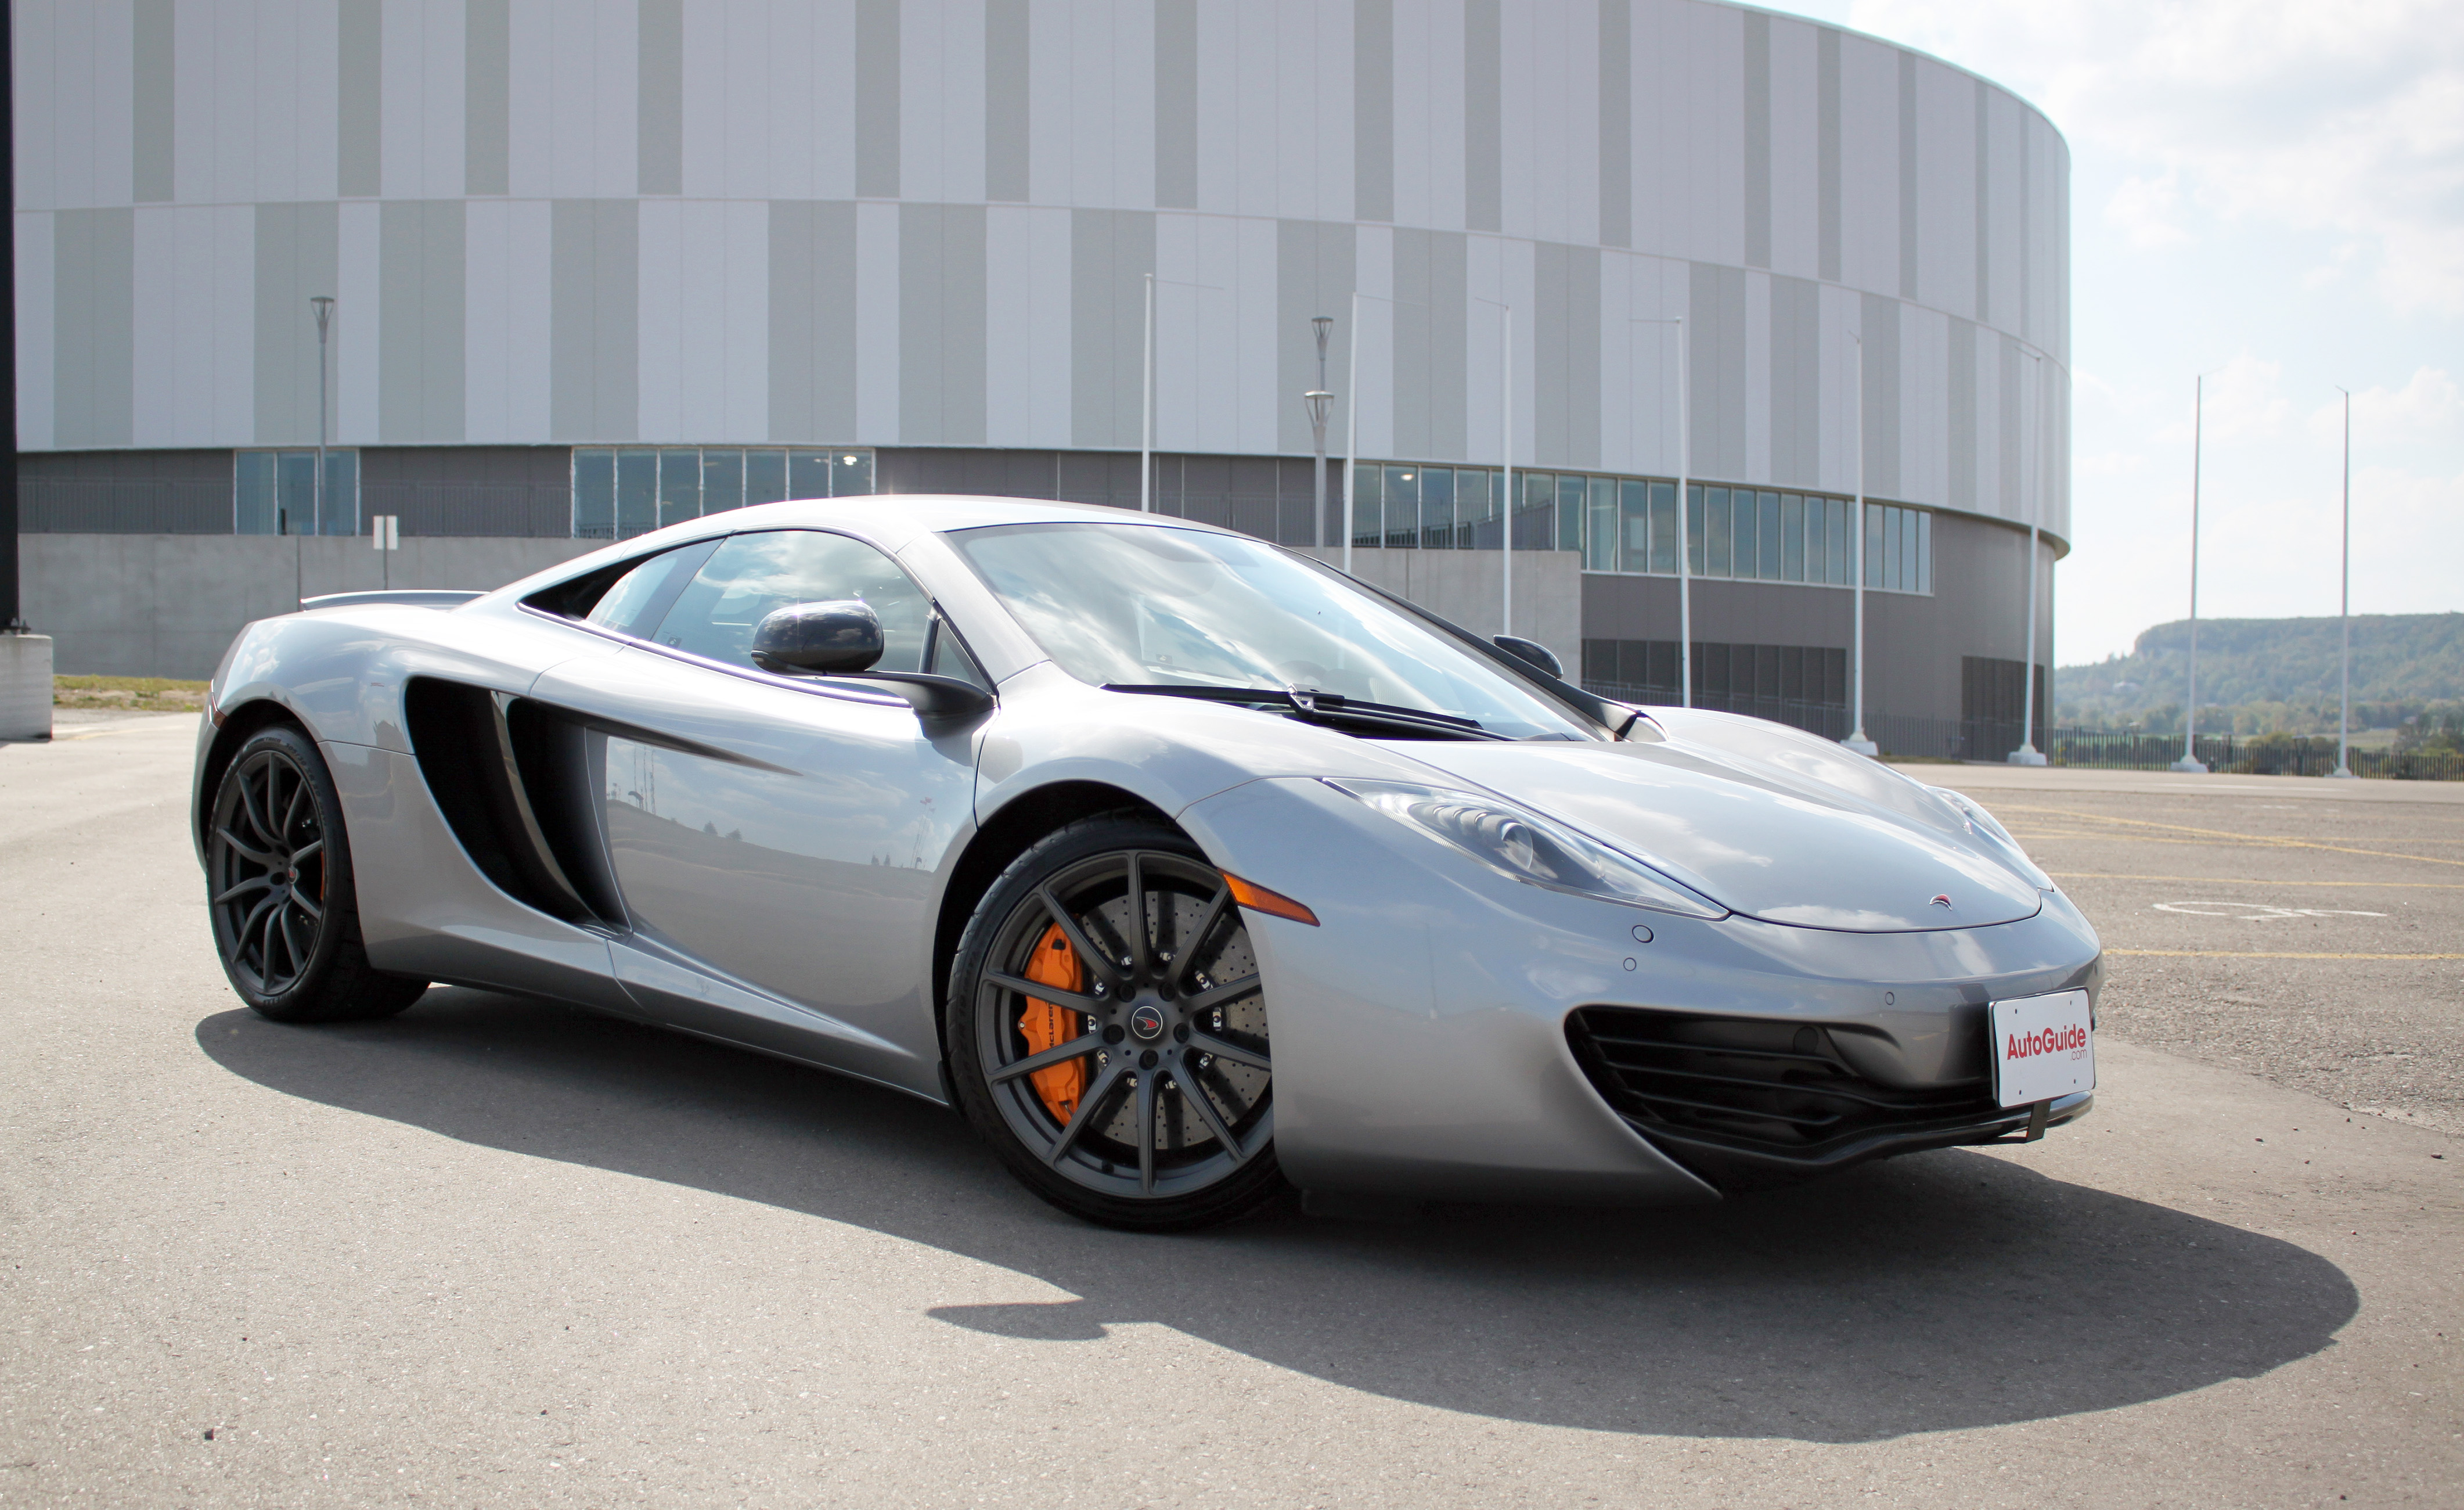 mclaren mp4-12c review: what's it like to drive a 5-year-old